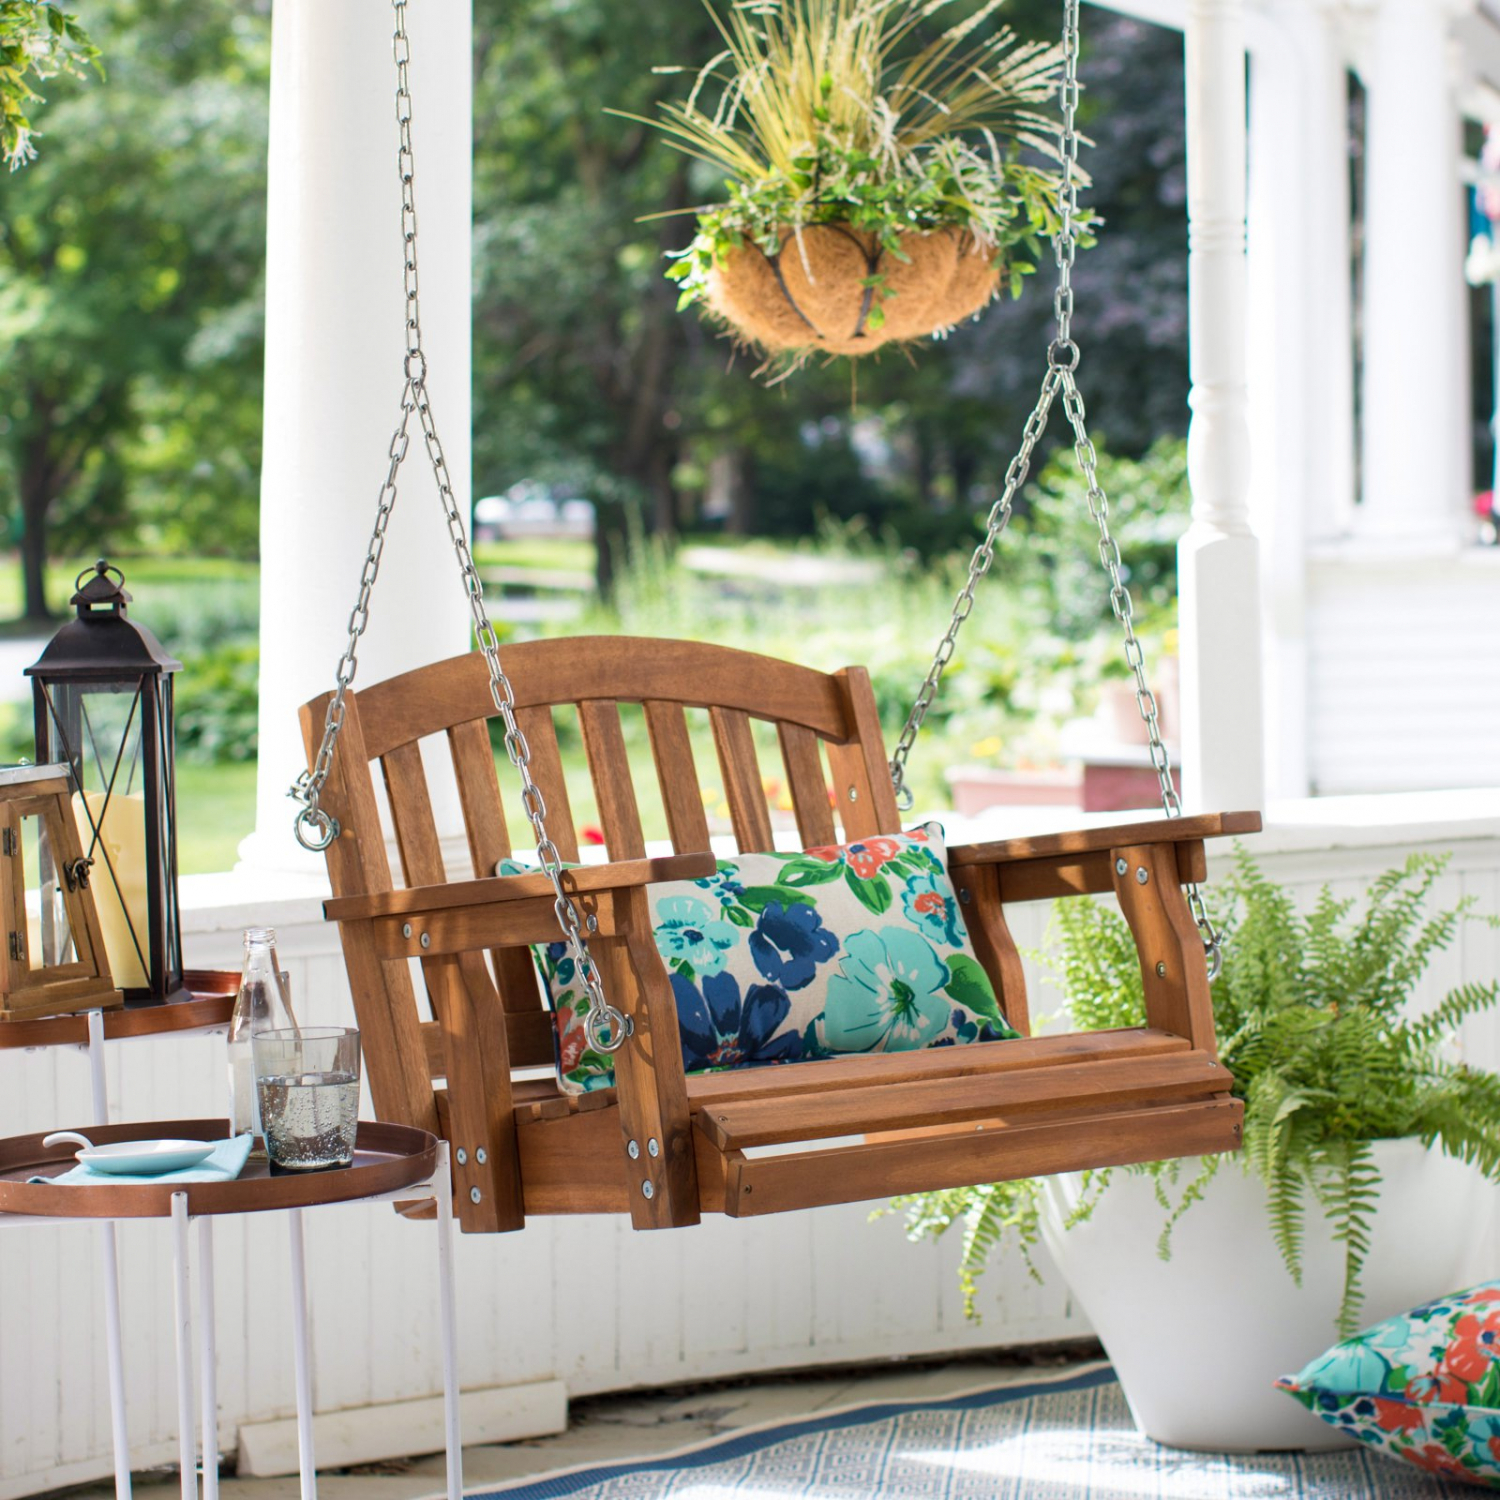 Details About Outdoor Wooden Porch Swing Hanging Chair Single Seat  Furniture Tree Backyard New Regarding Plain Porch Swings (View 22 of 25)